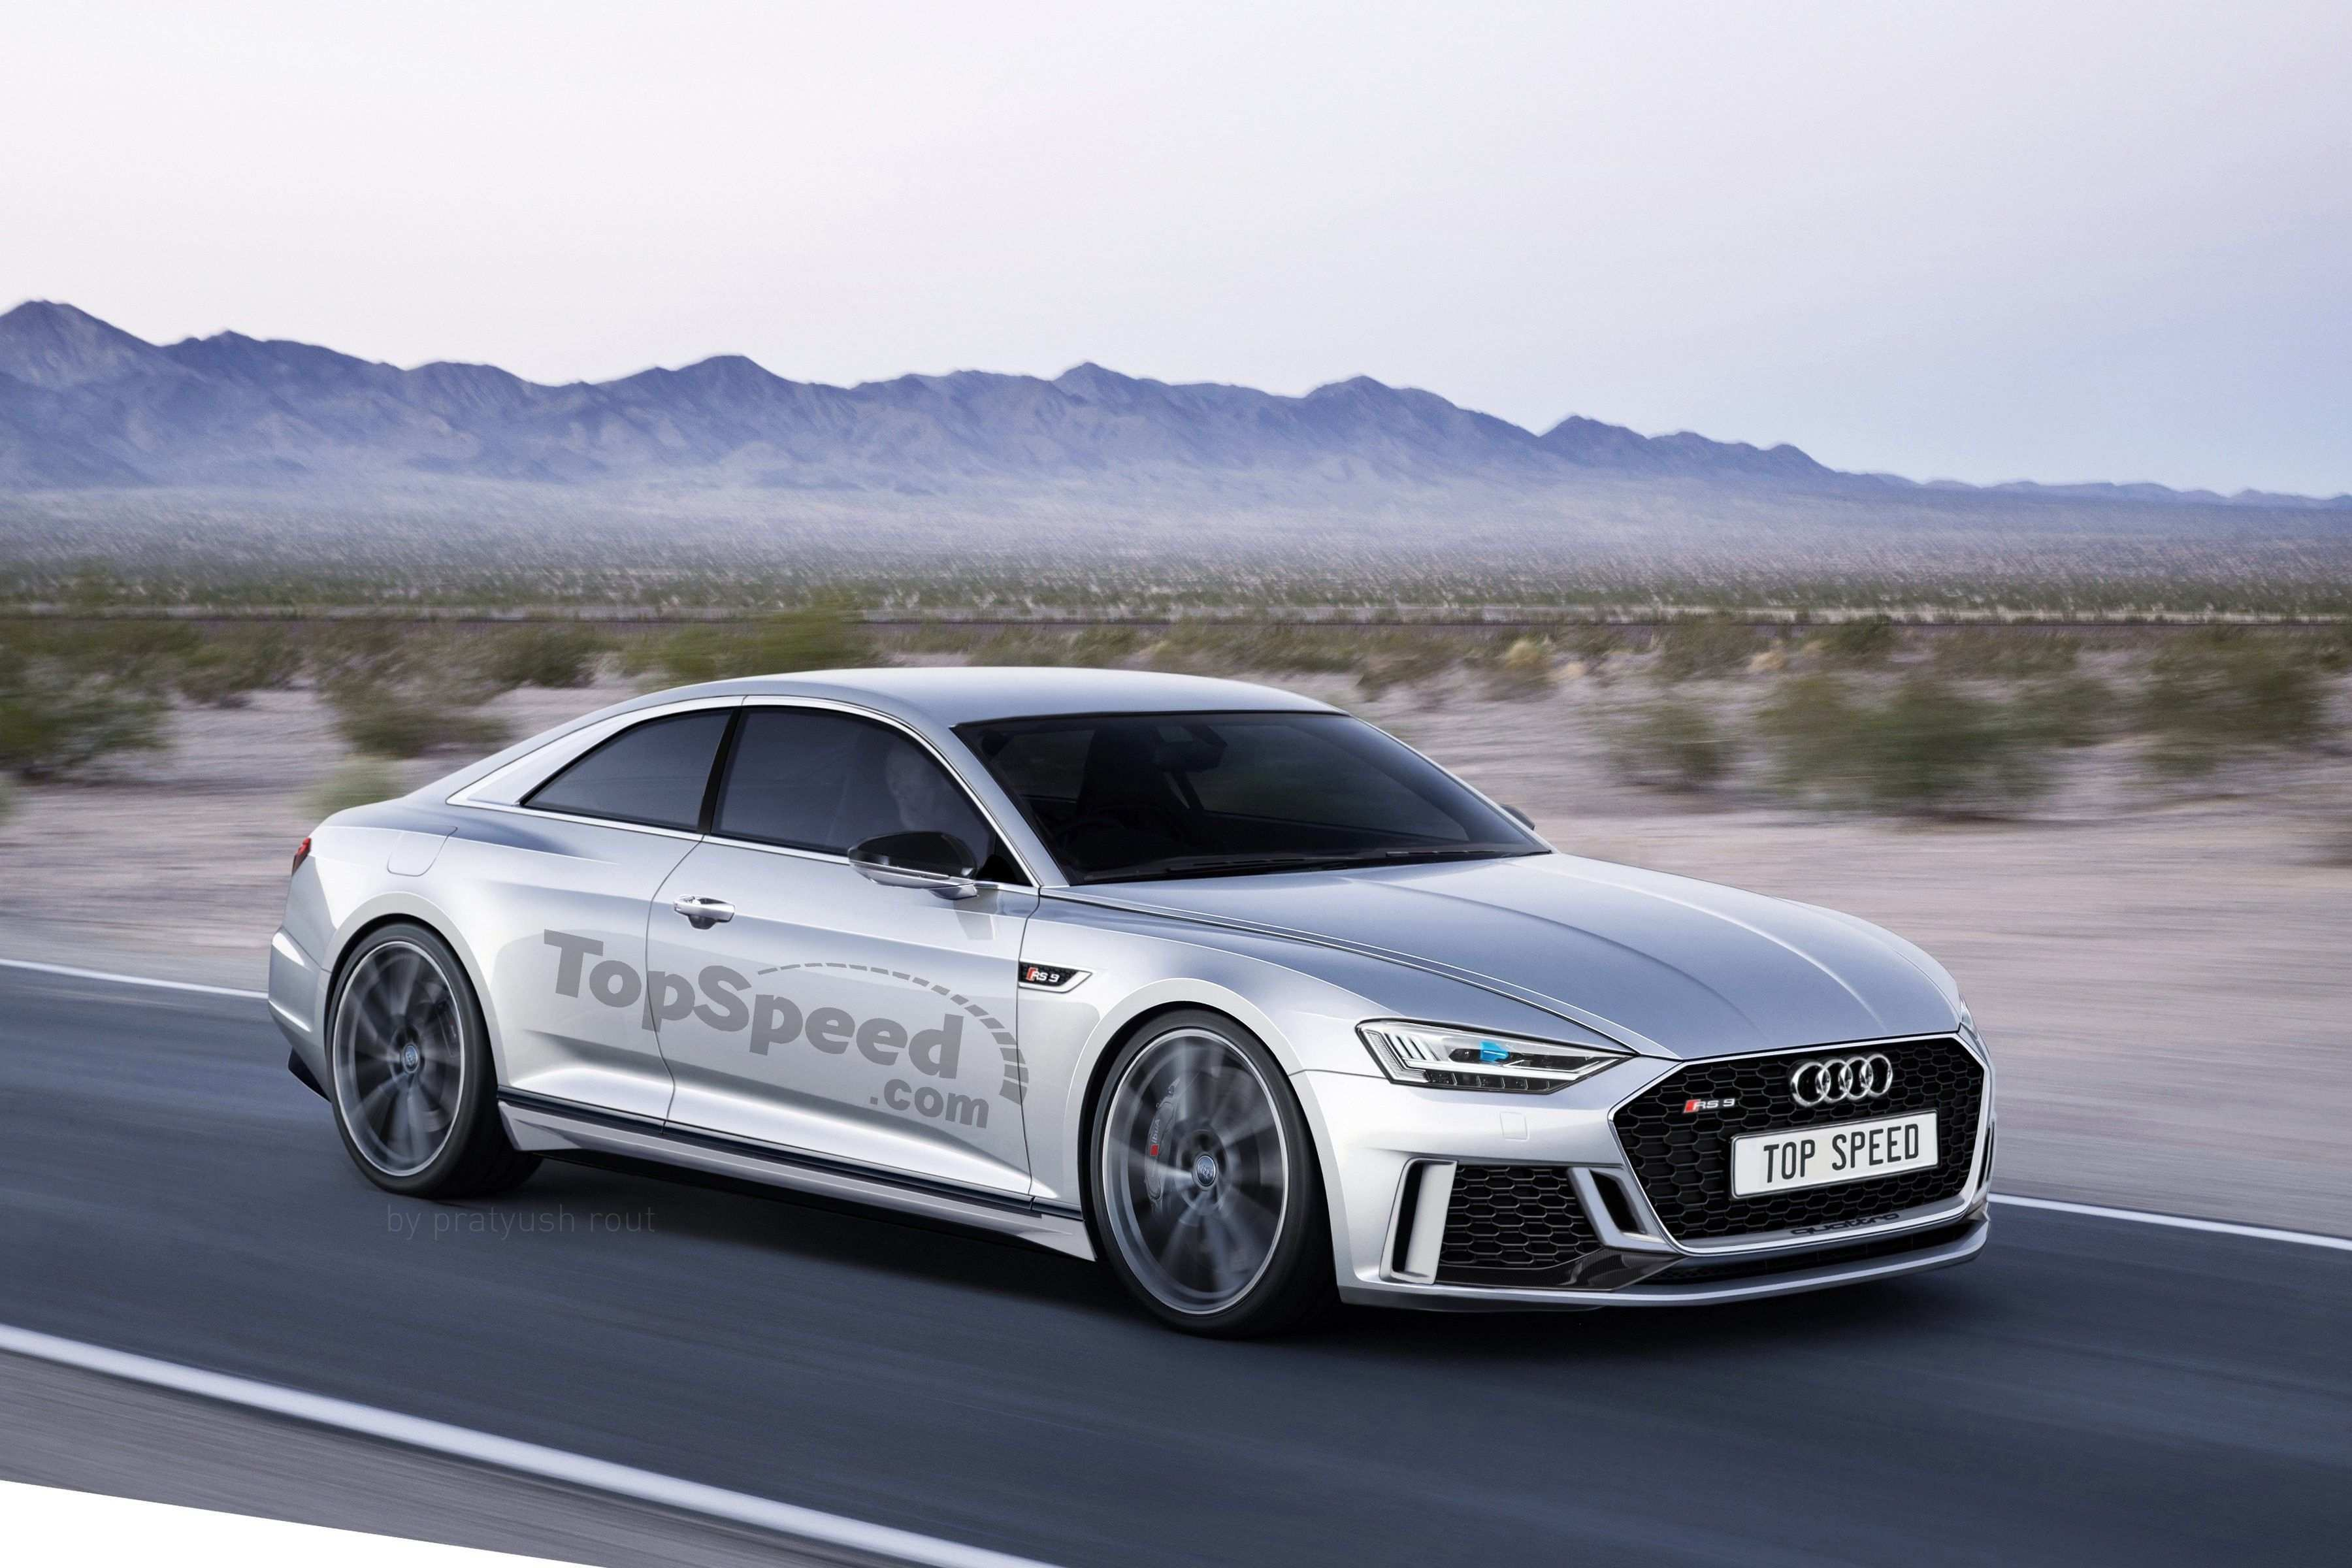 51 All New 2020 Audi S5 2020 Redesign by 2020 Audi S5 2020